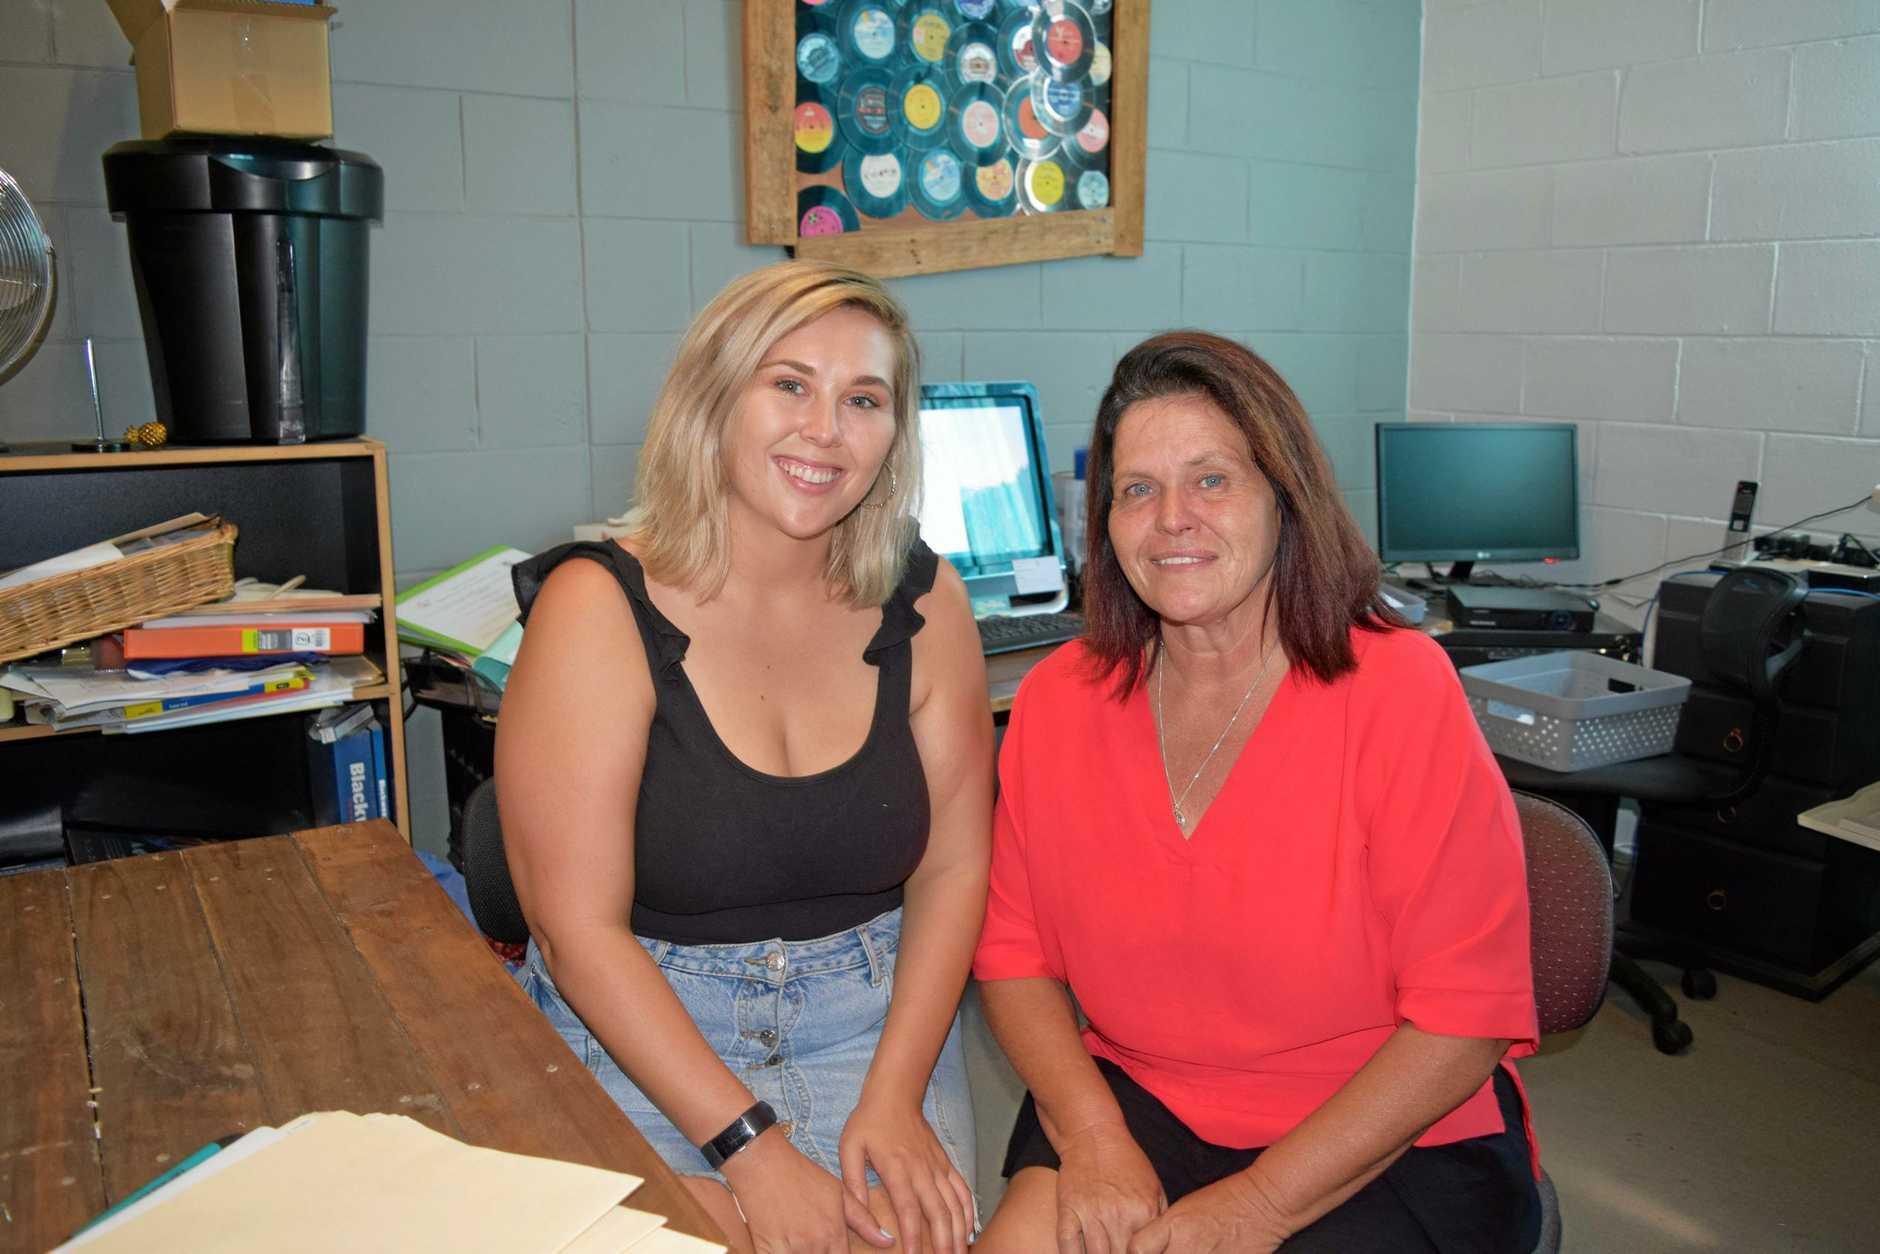 REAL ANGELS: Jasmine and Sue Tasker of Angels Community Group are holding a free program to help young adults age 15-19 gain a qualification.